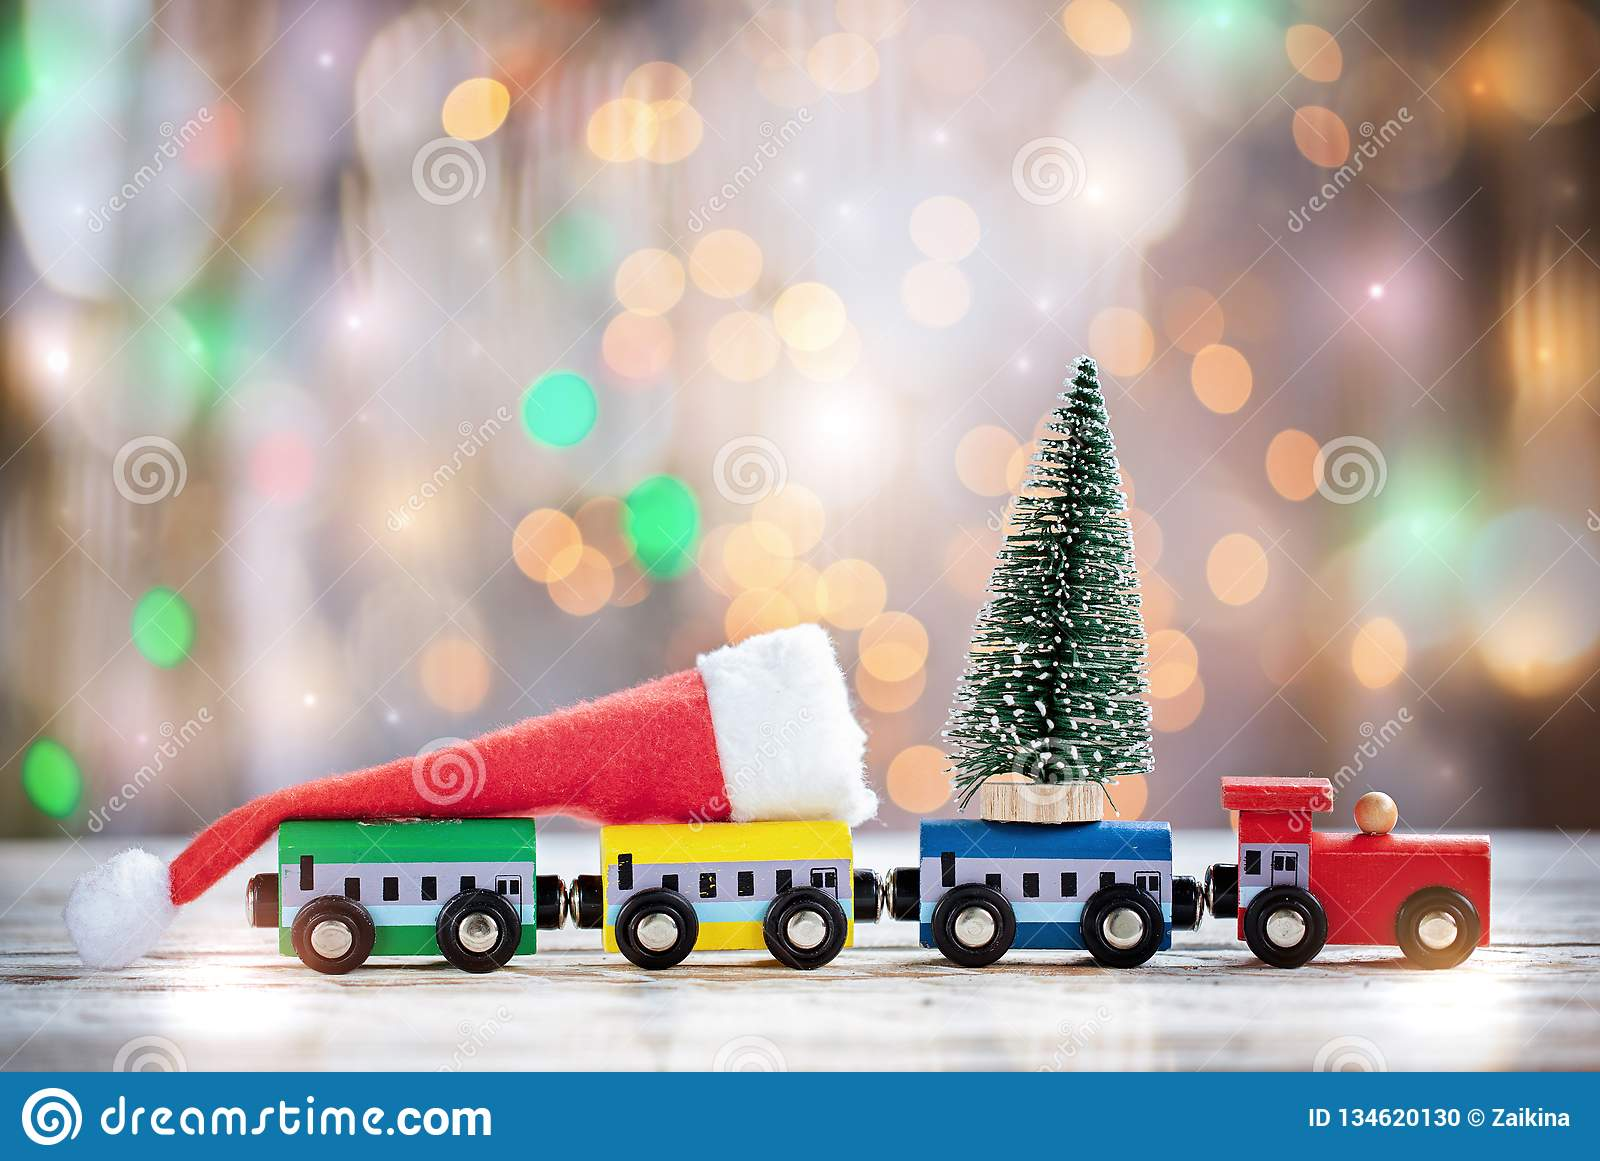 Winter Christmas background Miniature colorful train with fir tree. Holiday greeting card